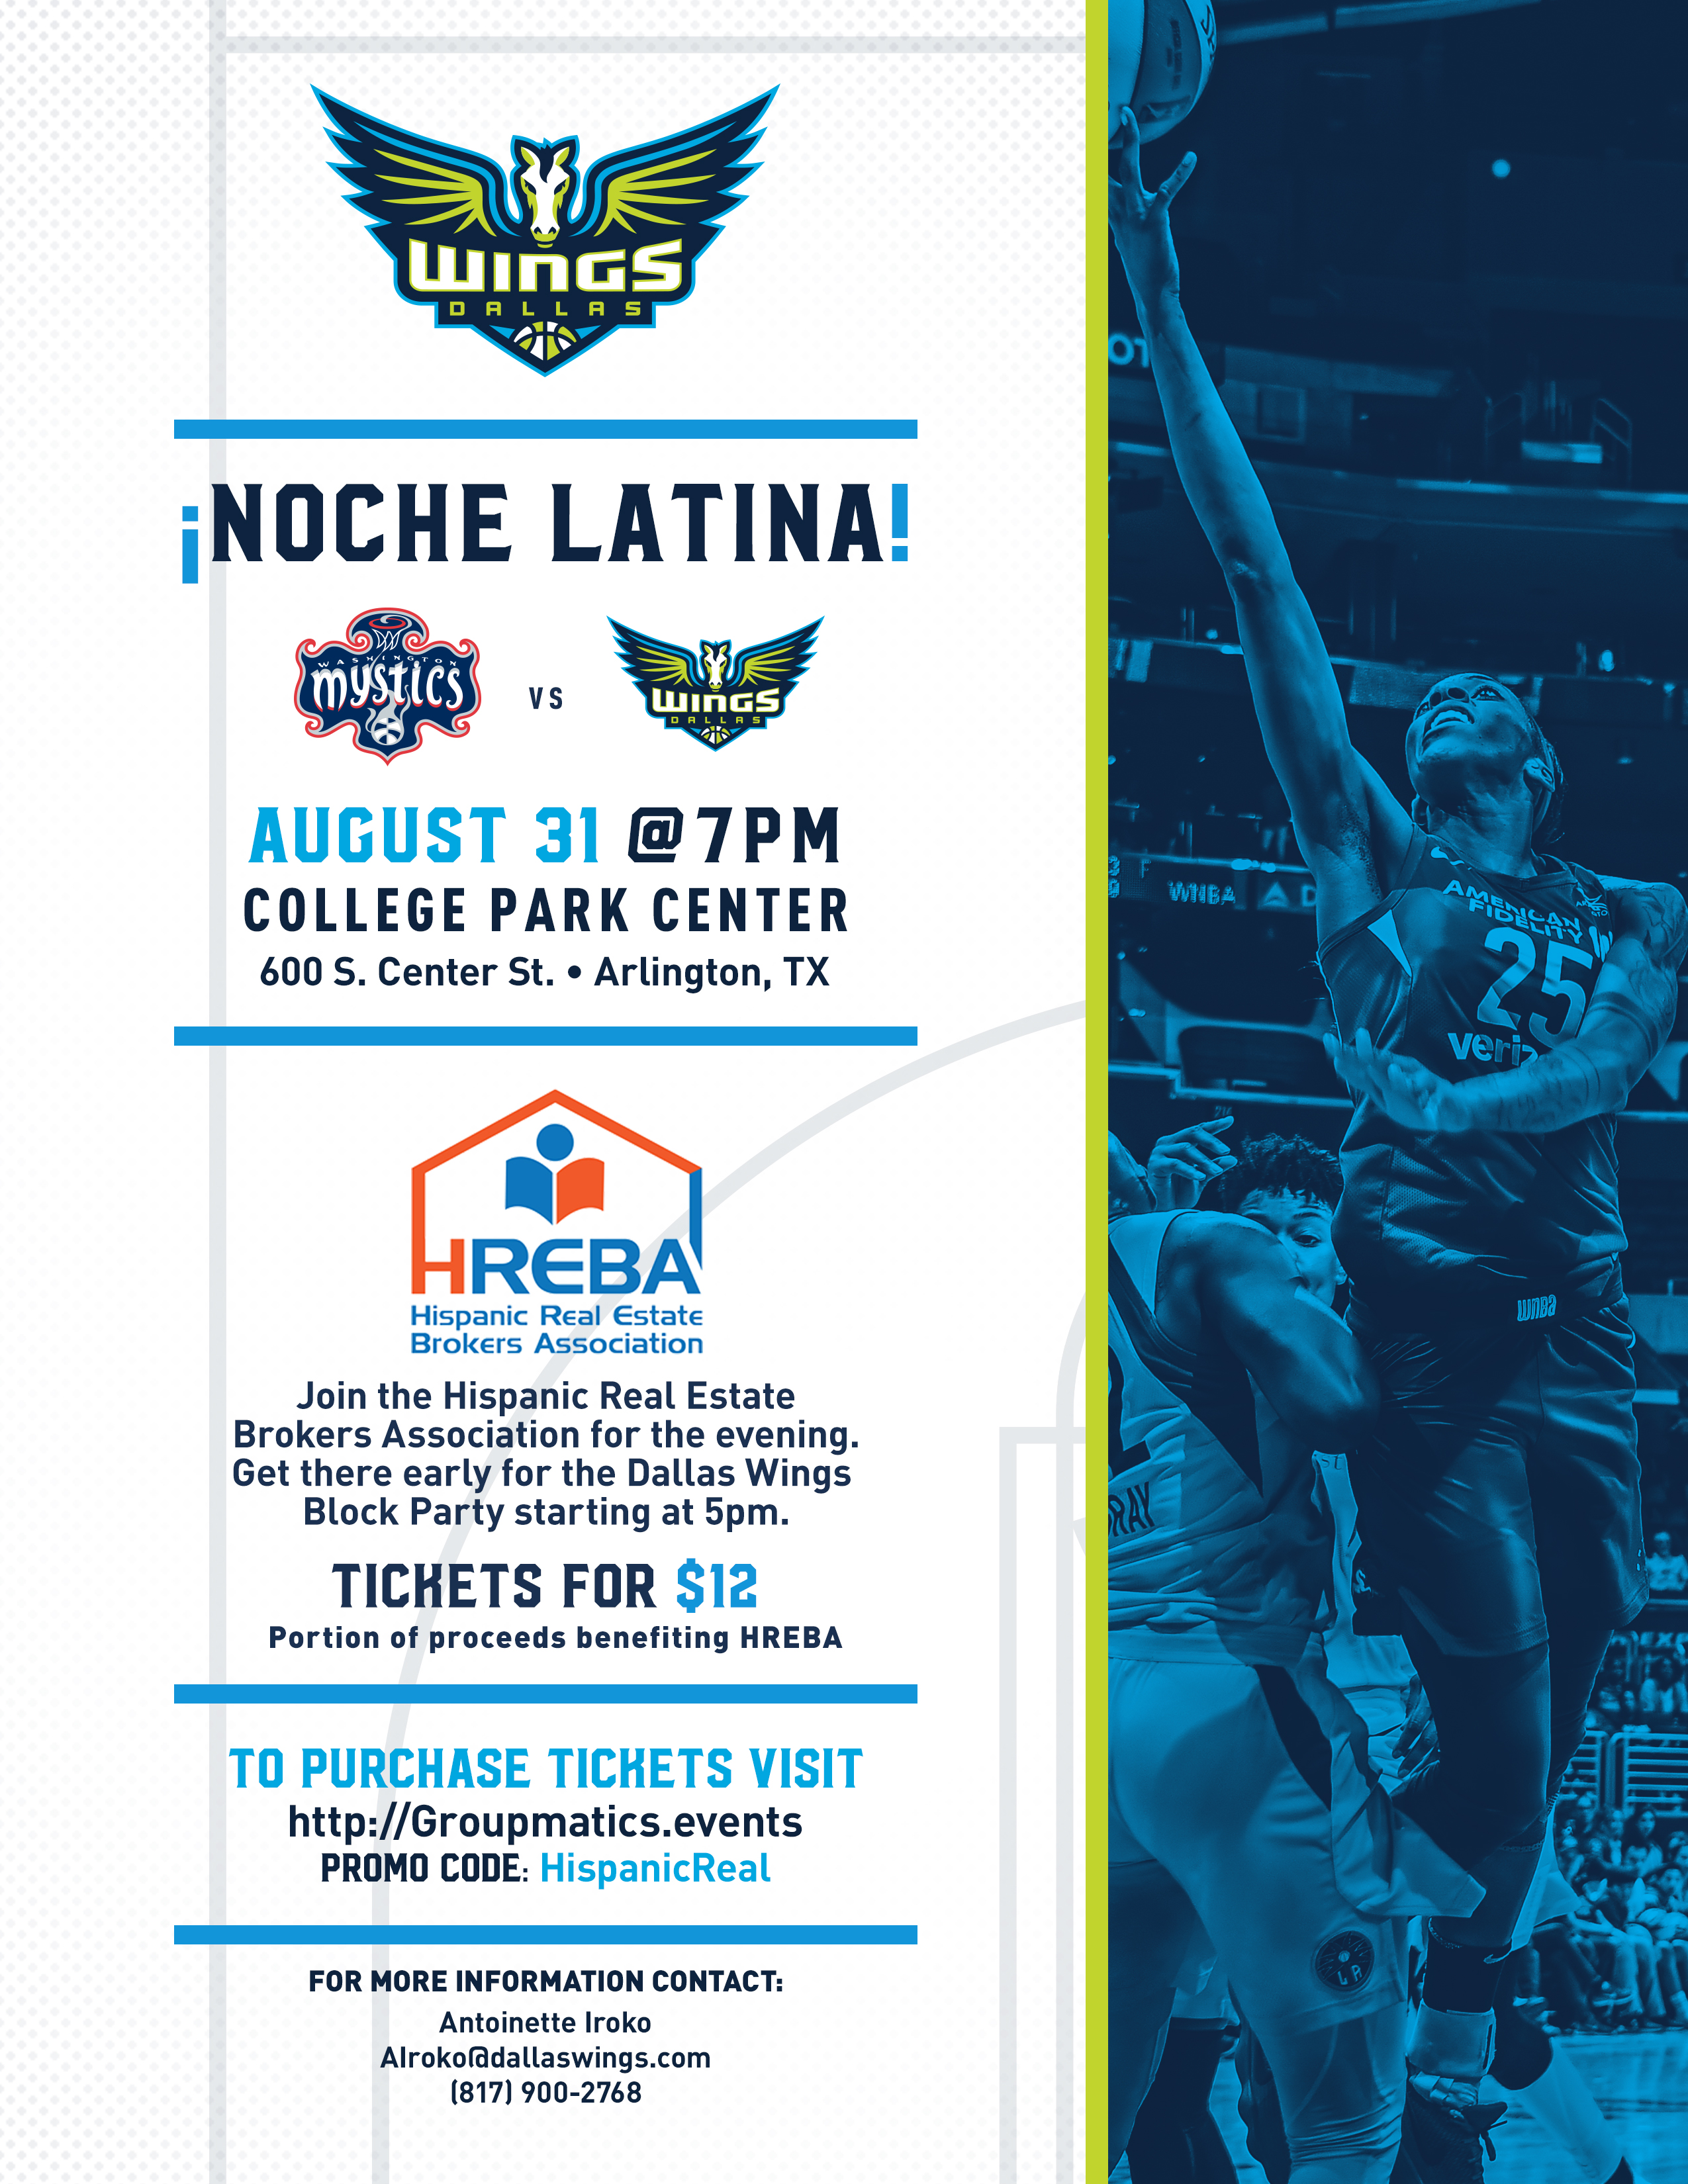 """Noche Latina"" with Dallas Wings"